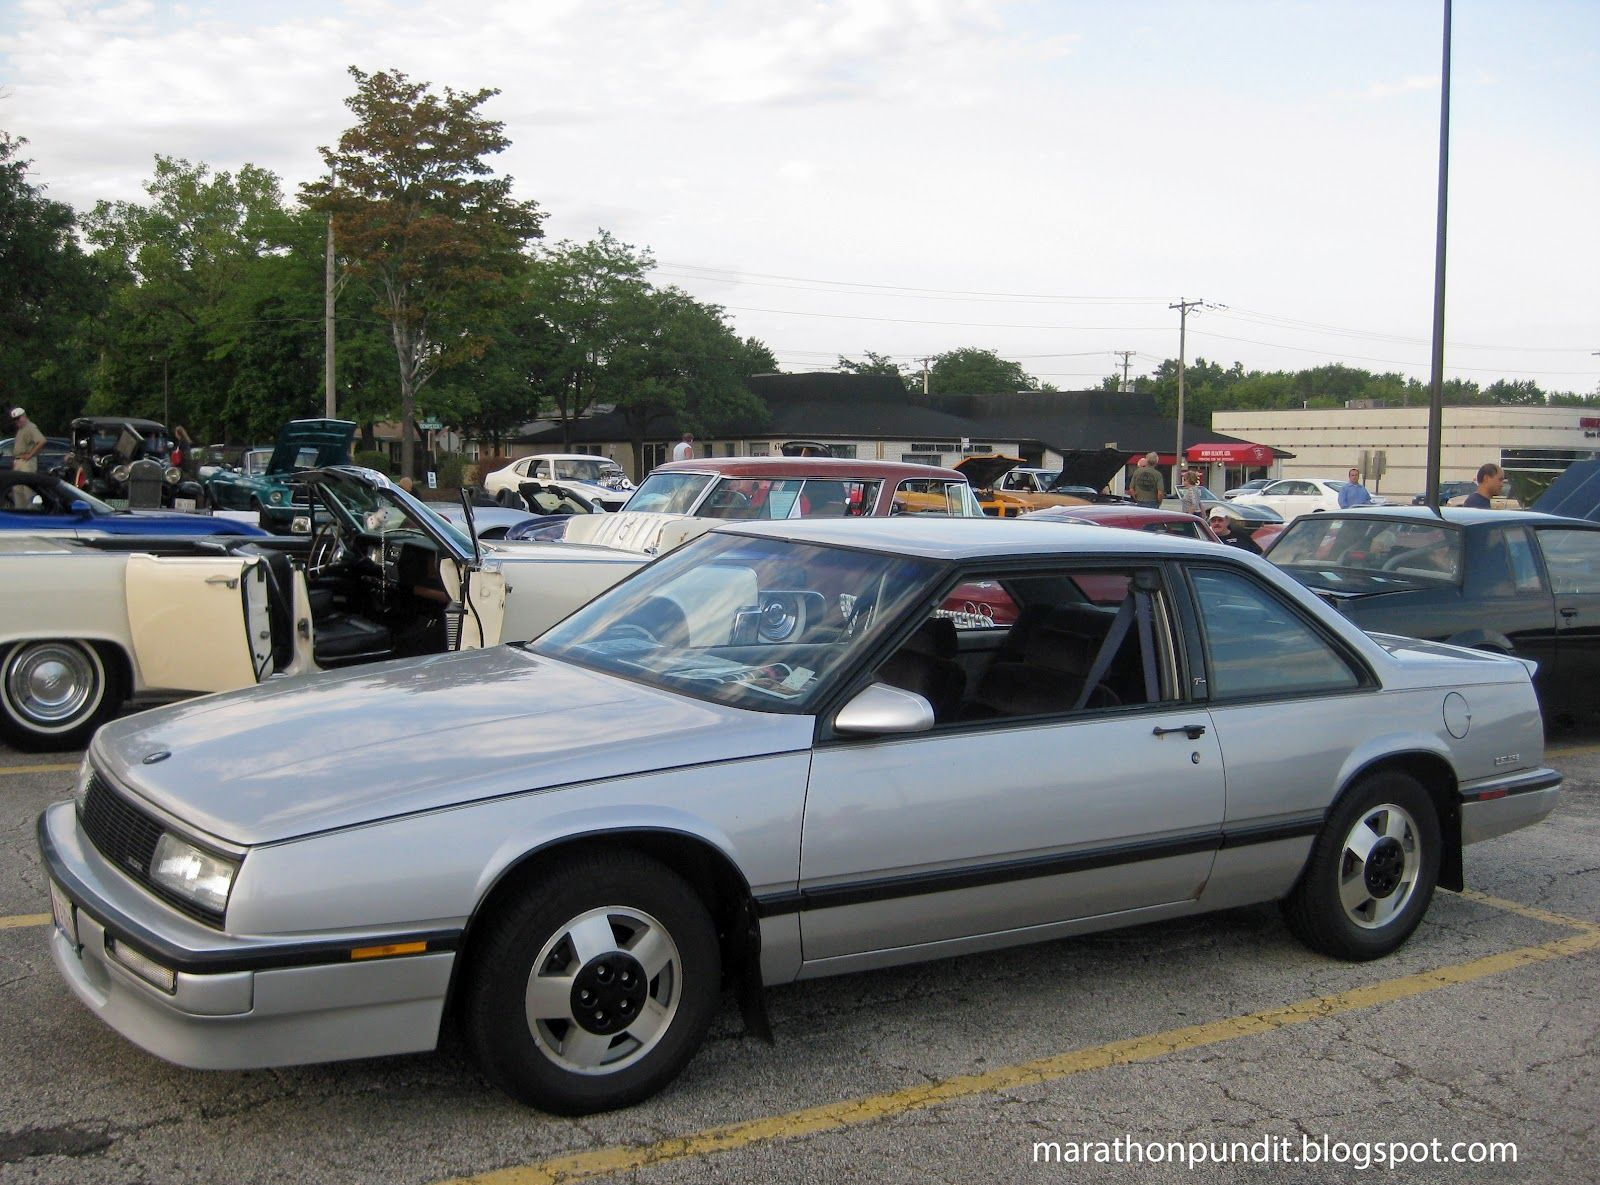 hight resolution of a rare 1989 buick lesabre t type morton grove classic car show july 27 2012